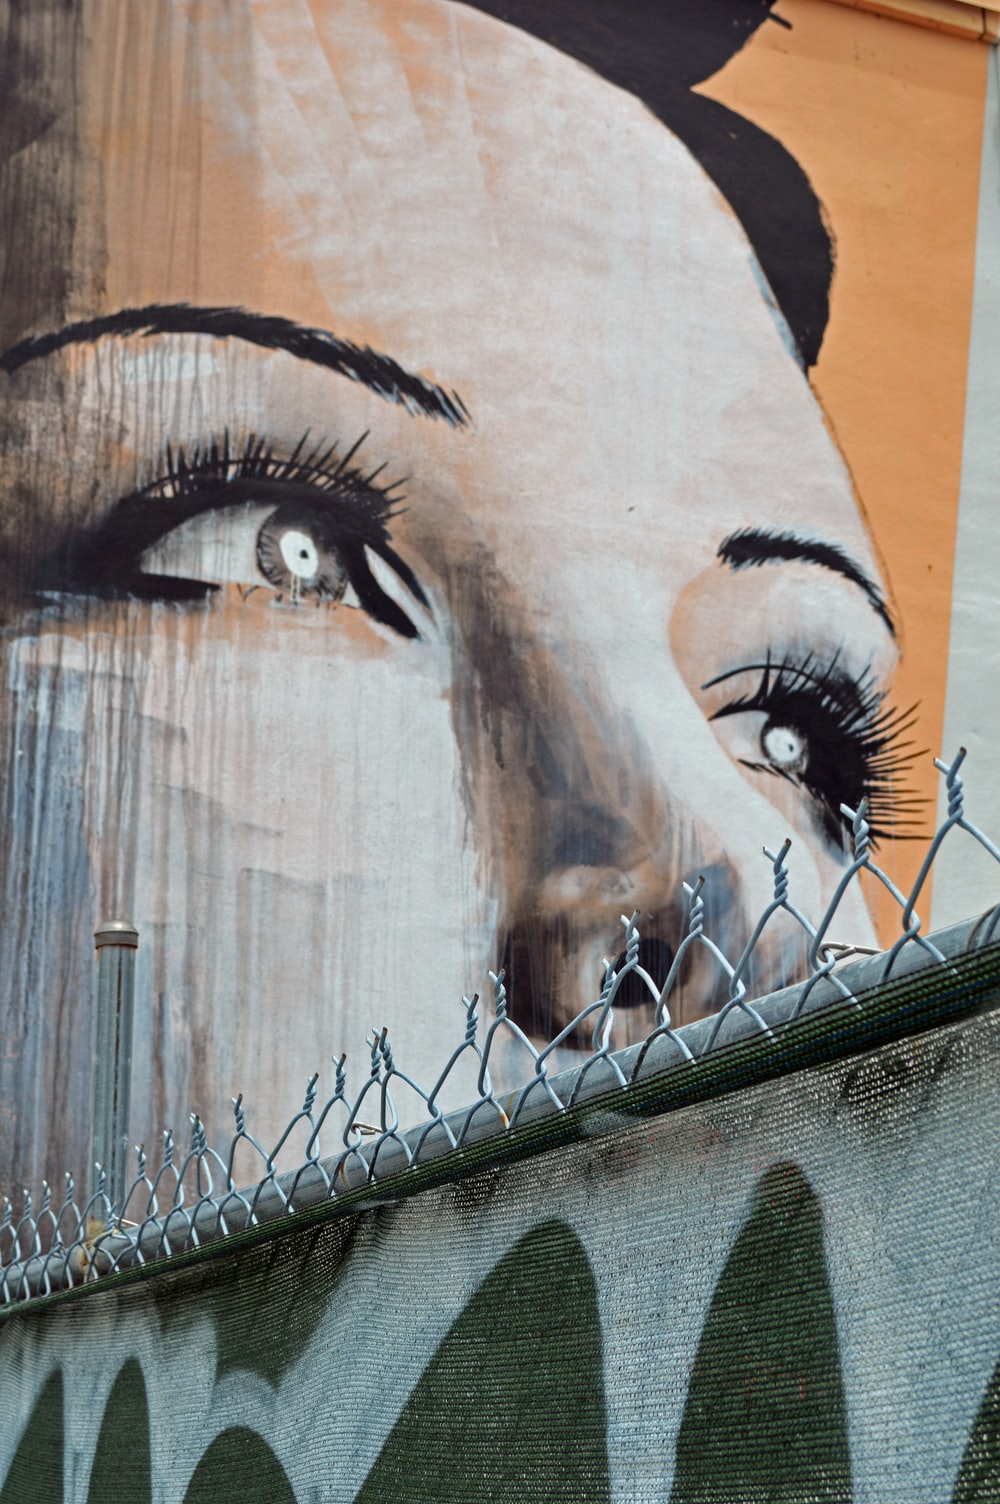 womans face graffiti on brown wooden wall